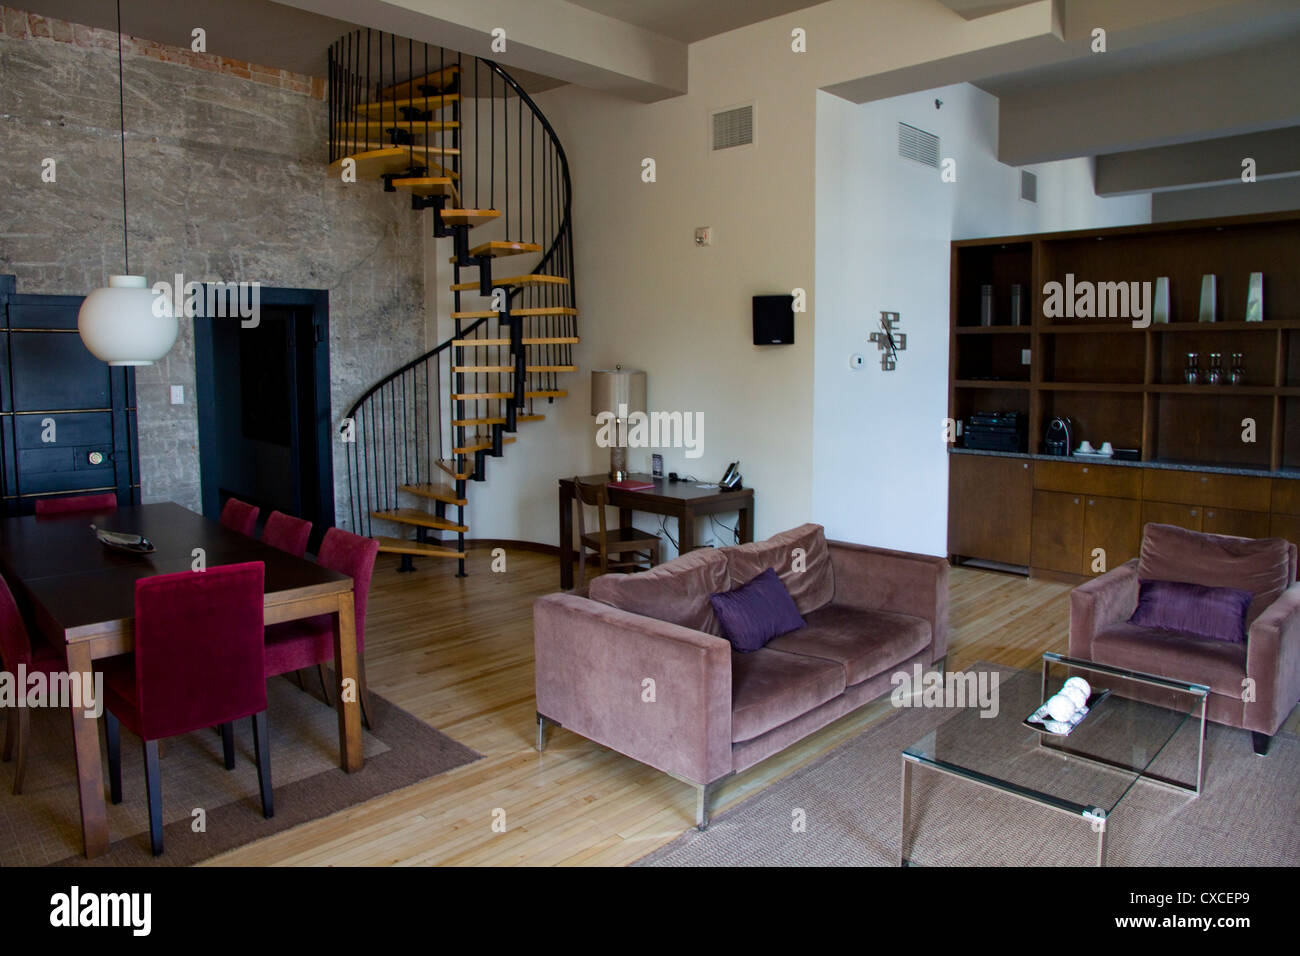 Spiral staircase hotel 71 suite quebec city canada for Design hotel quebec city